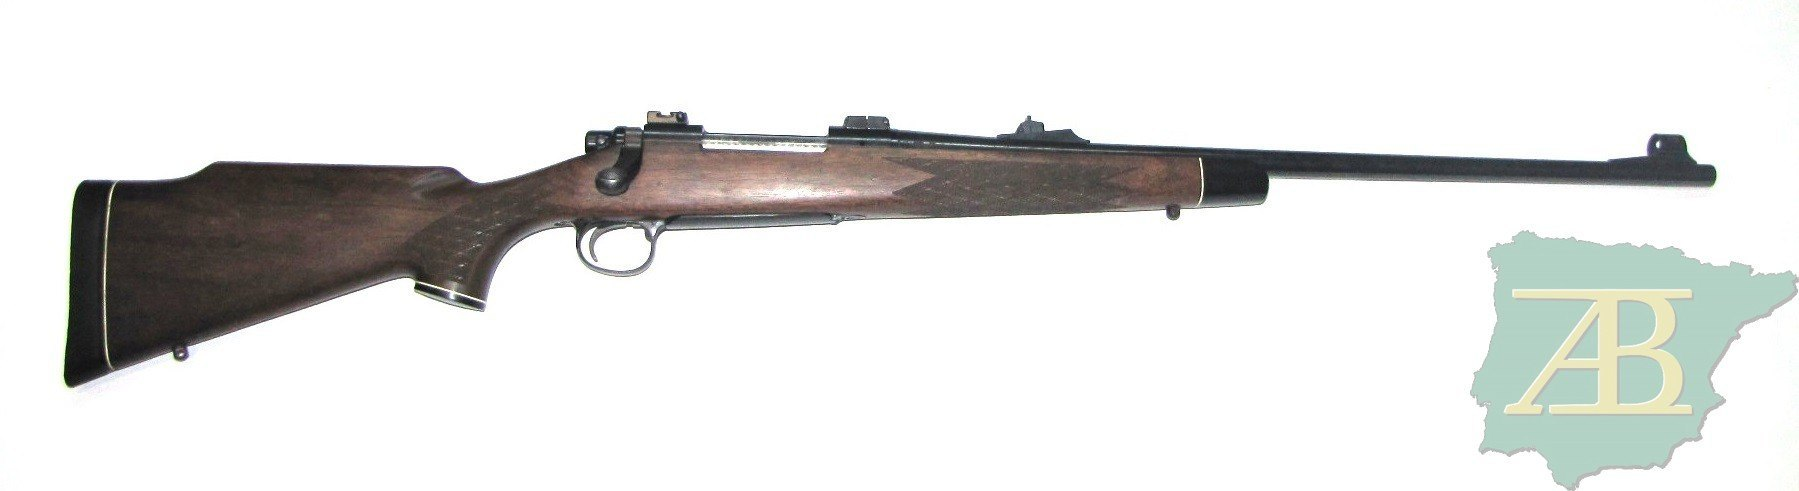 RIFLE DE CERROJO DE CAZA REMINGTON 7MM WIN. MAG. Ref. 4186